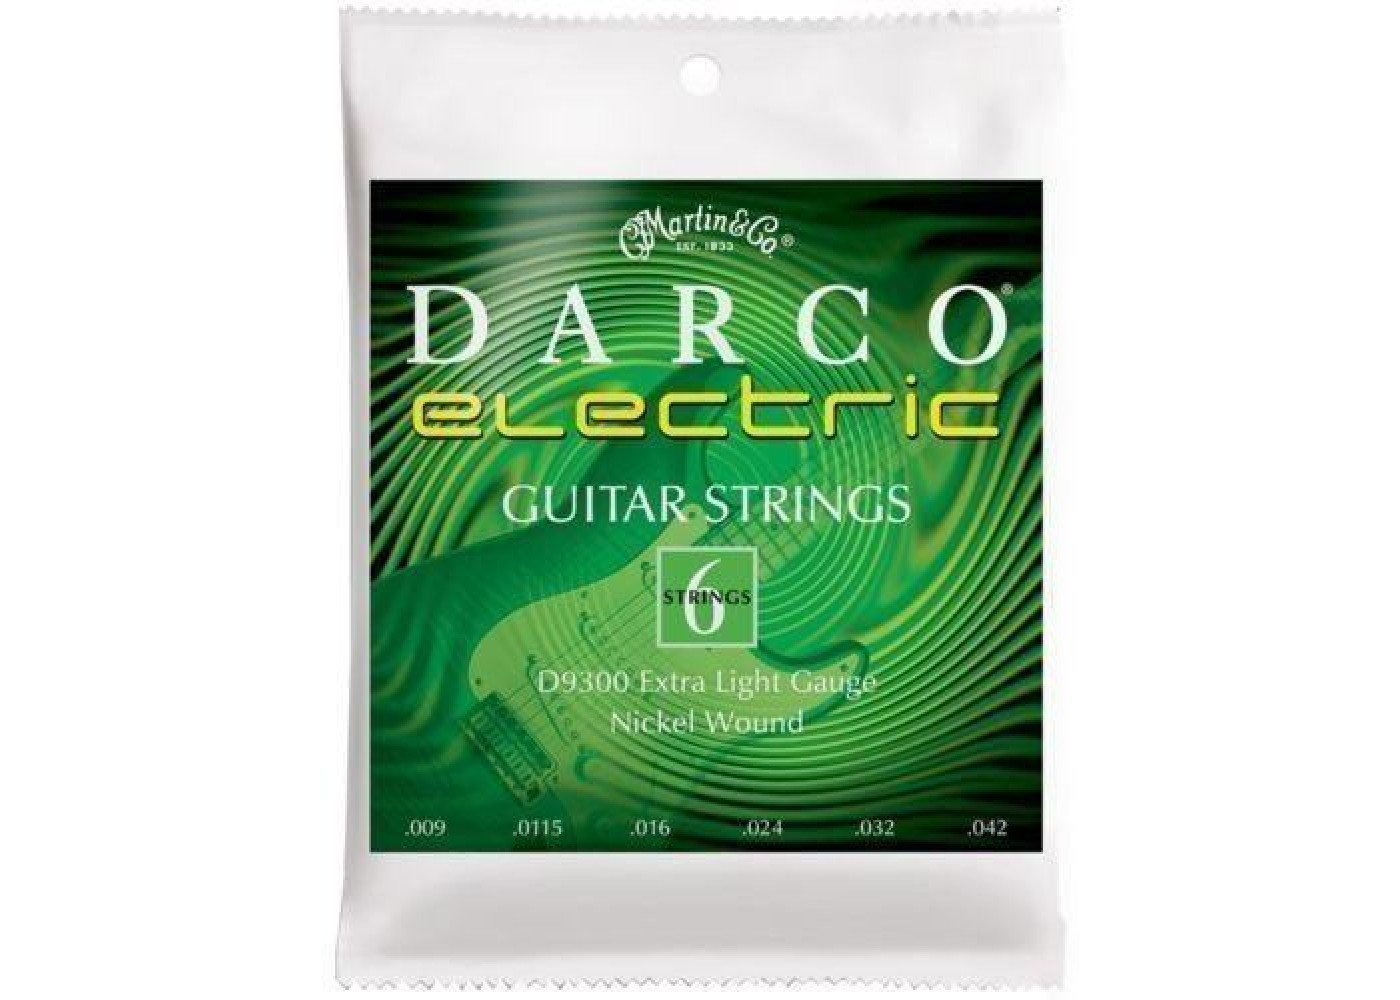 martin darco electric guitar strings d9300 extra light gauge 009 042 brand new. Black Bedroom Furniture Sets. Home Design Ideas